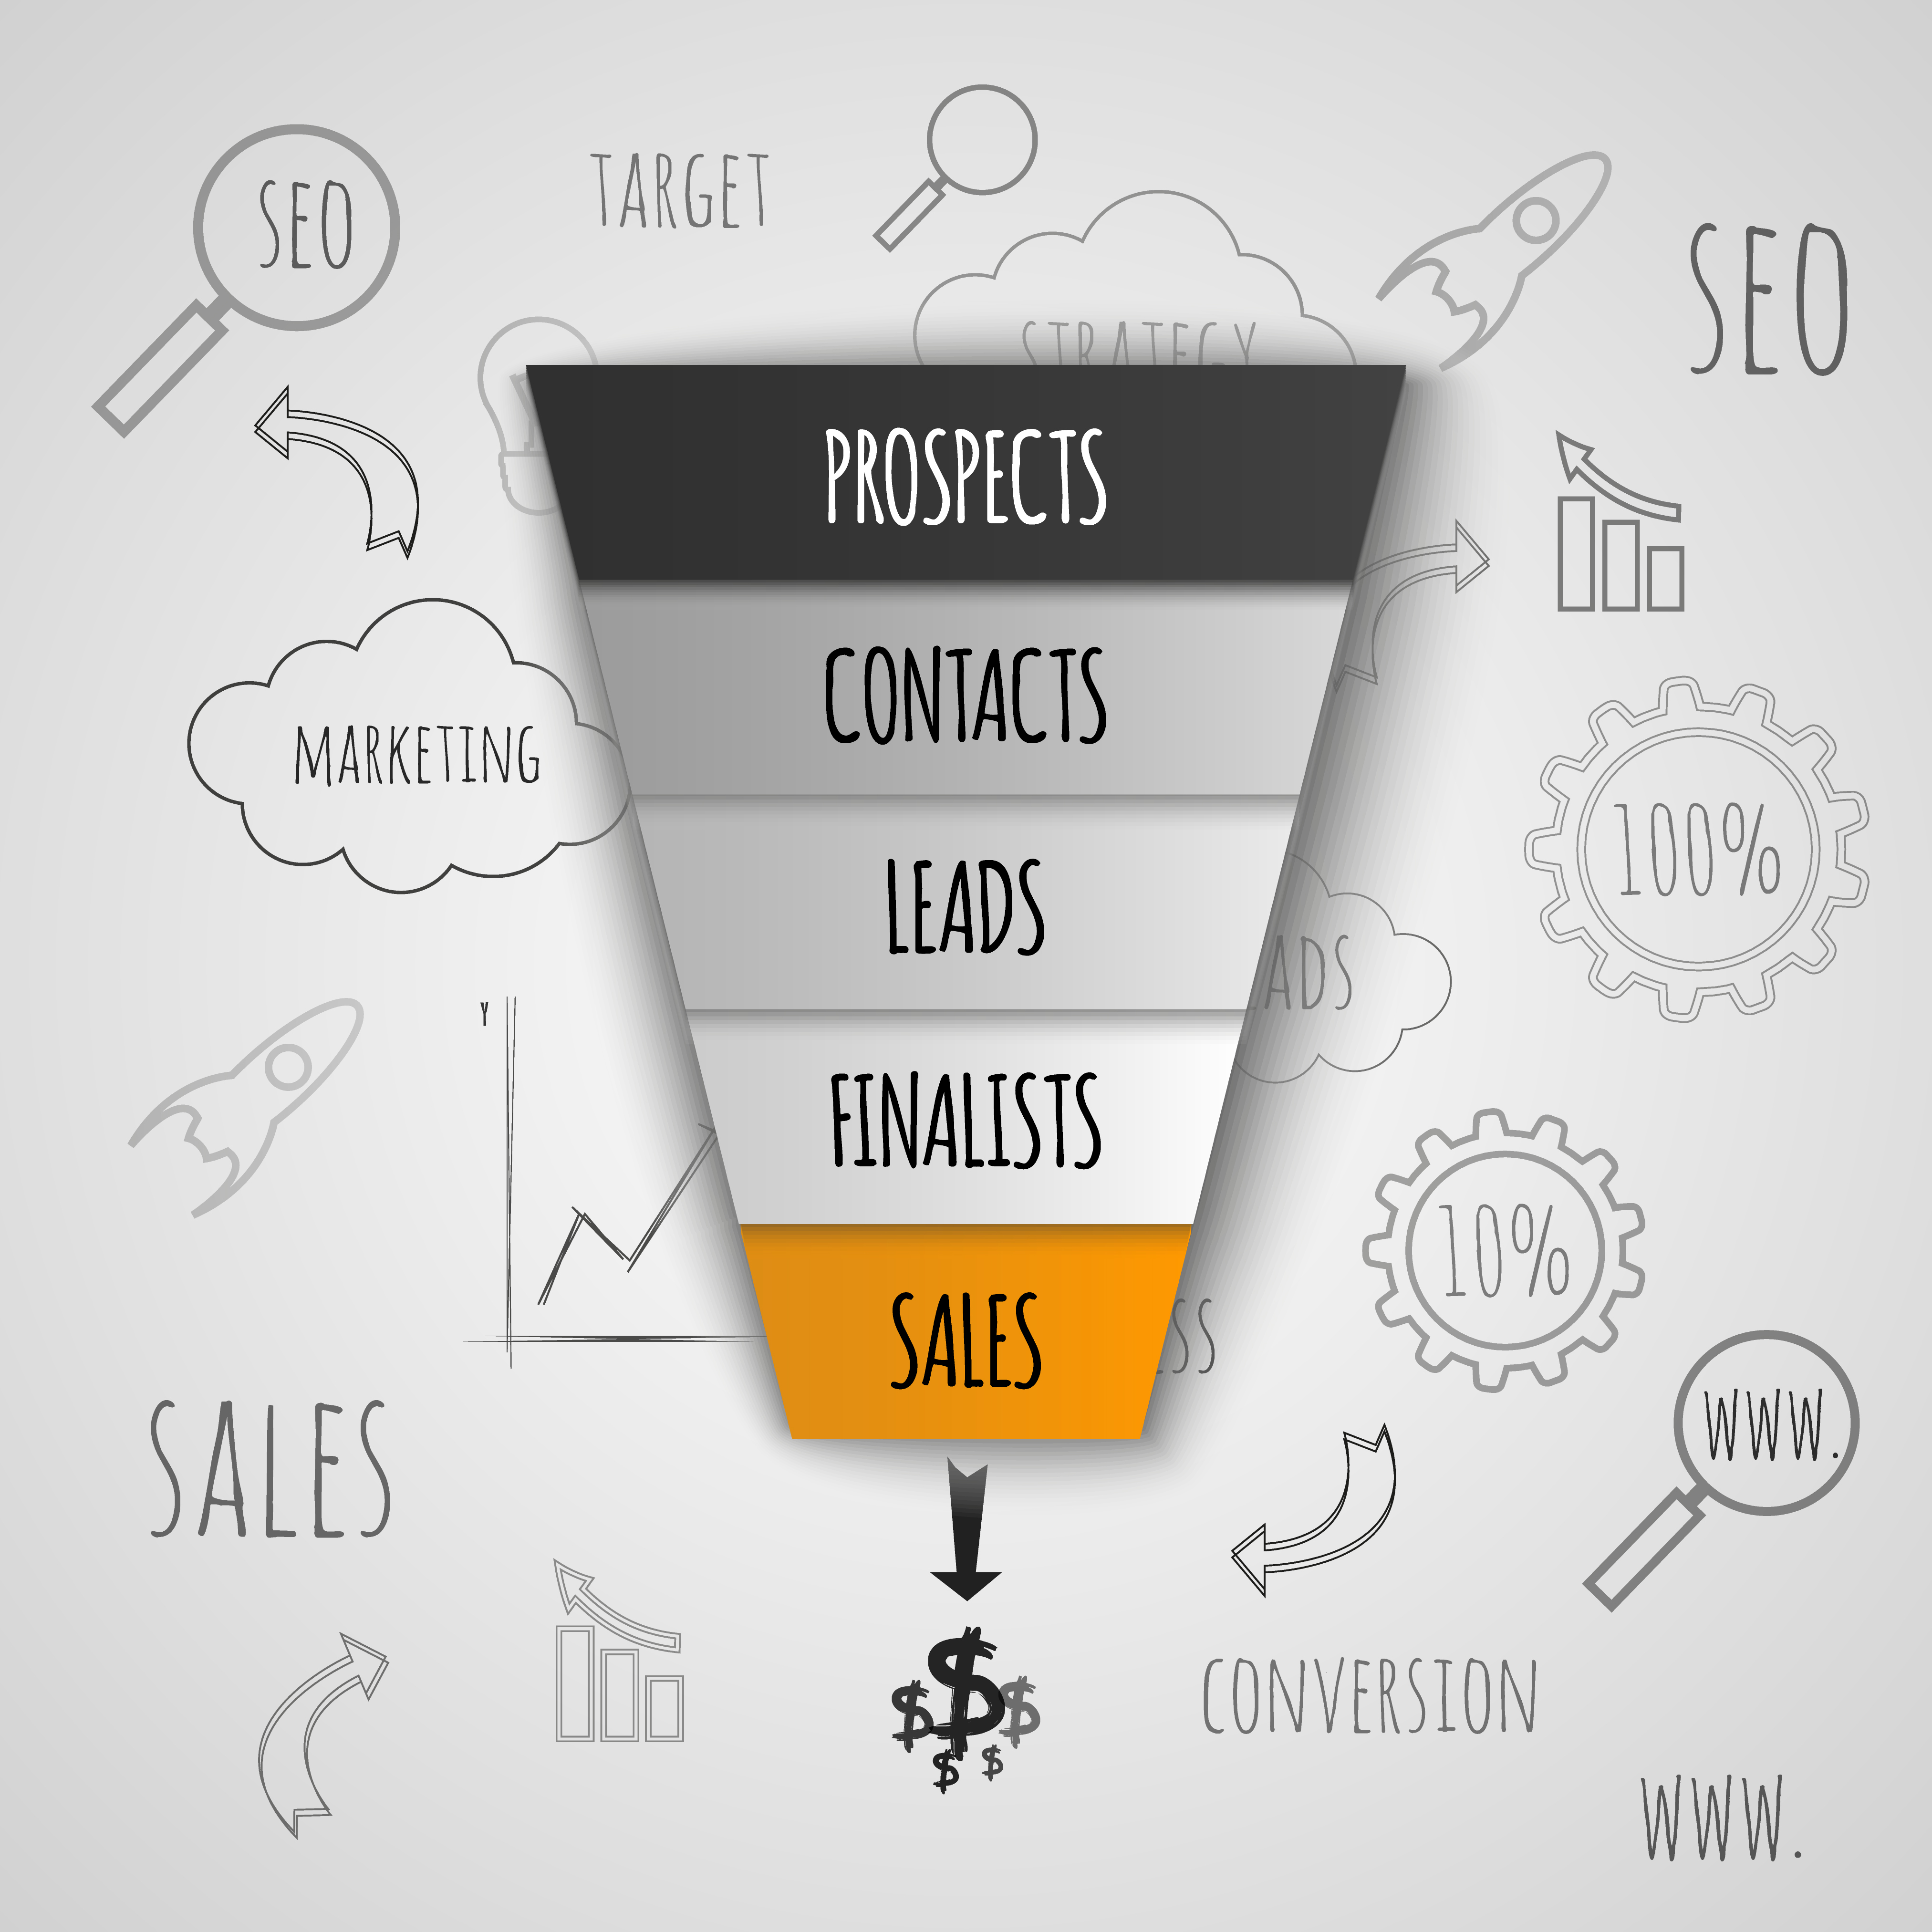 Turn Your Website Into A Lead Generating Monster